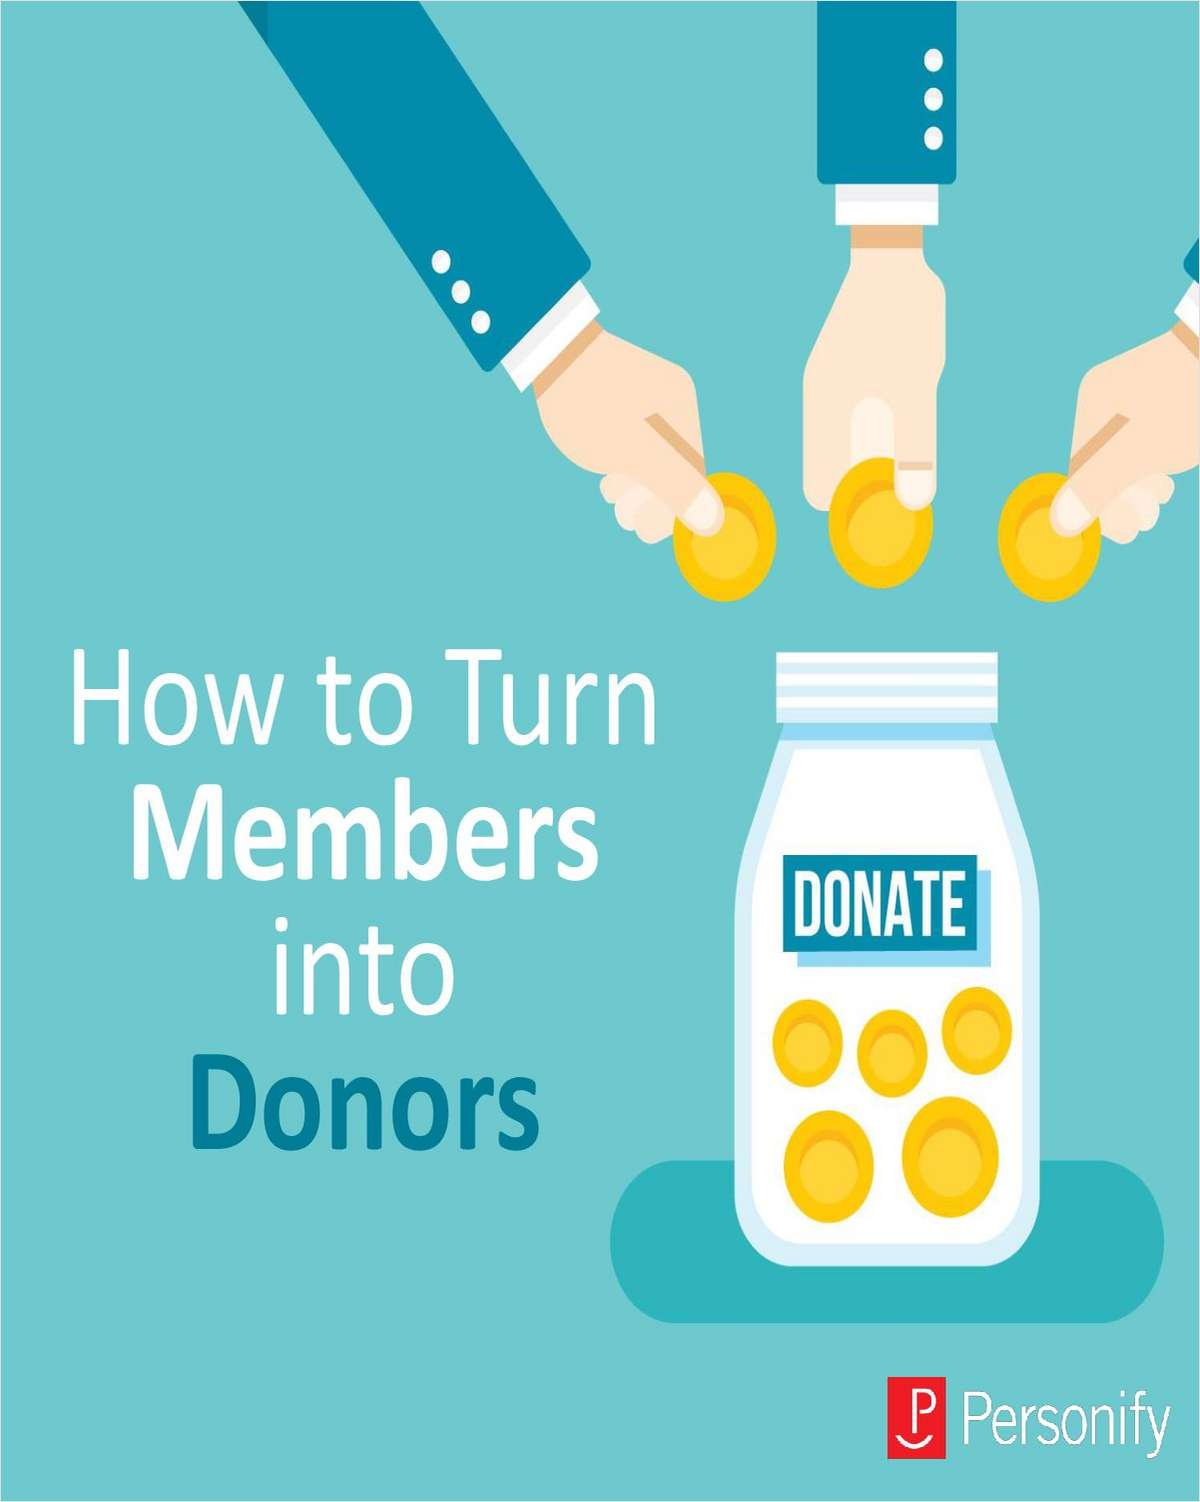 How to Turn Members into Donors